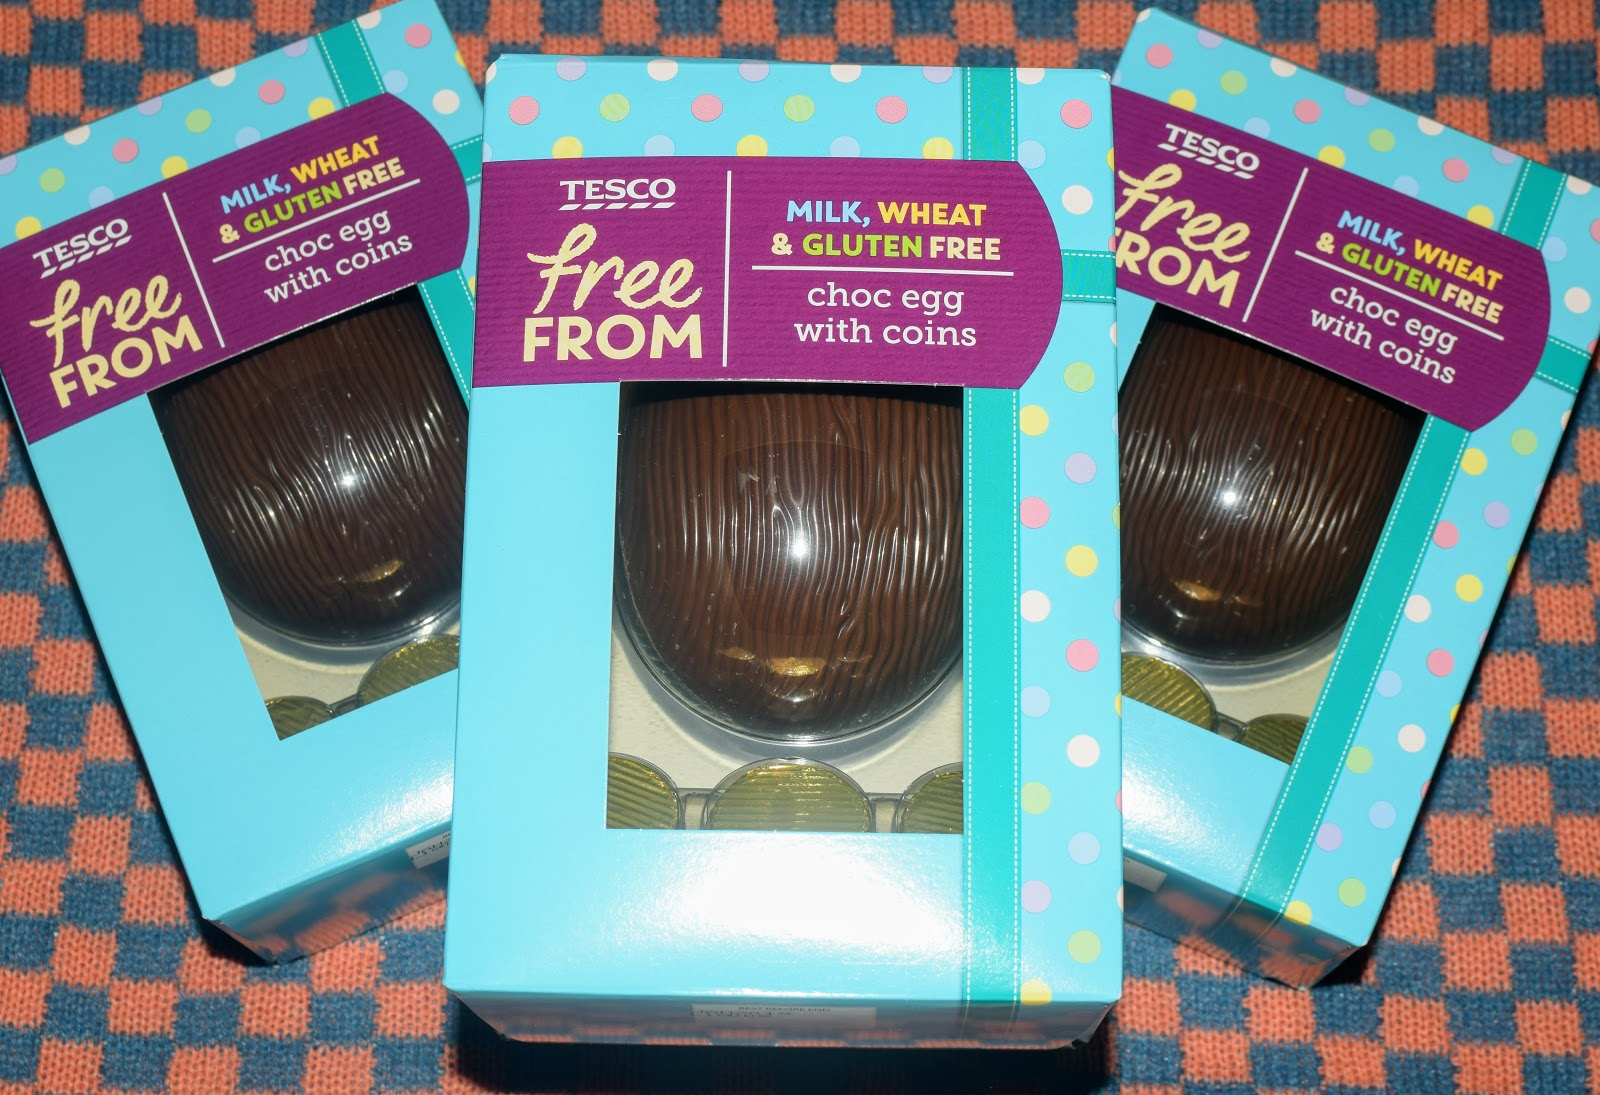 Food Win A Tesco Free From Choc Egg With Coins Diary Of